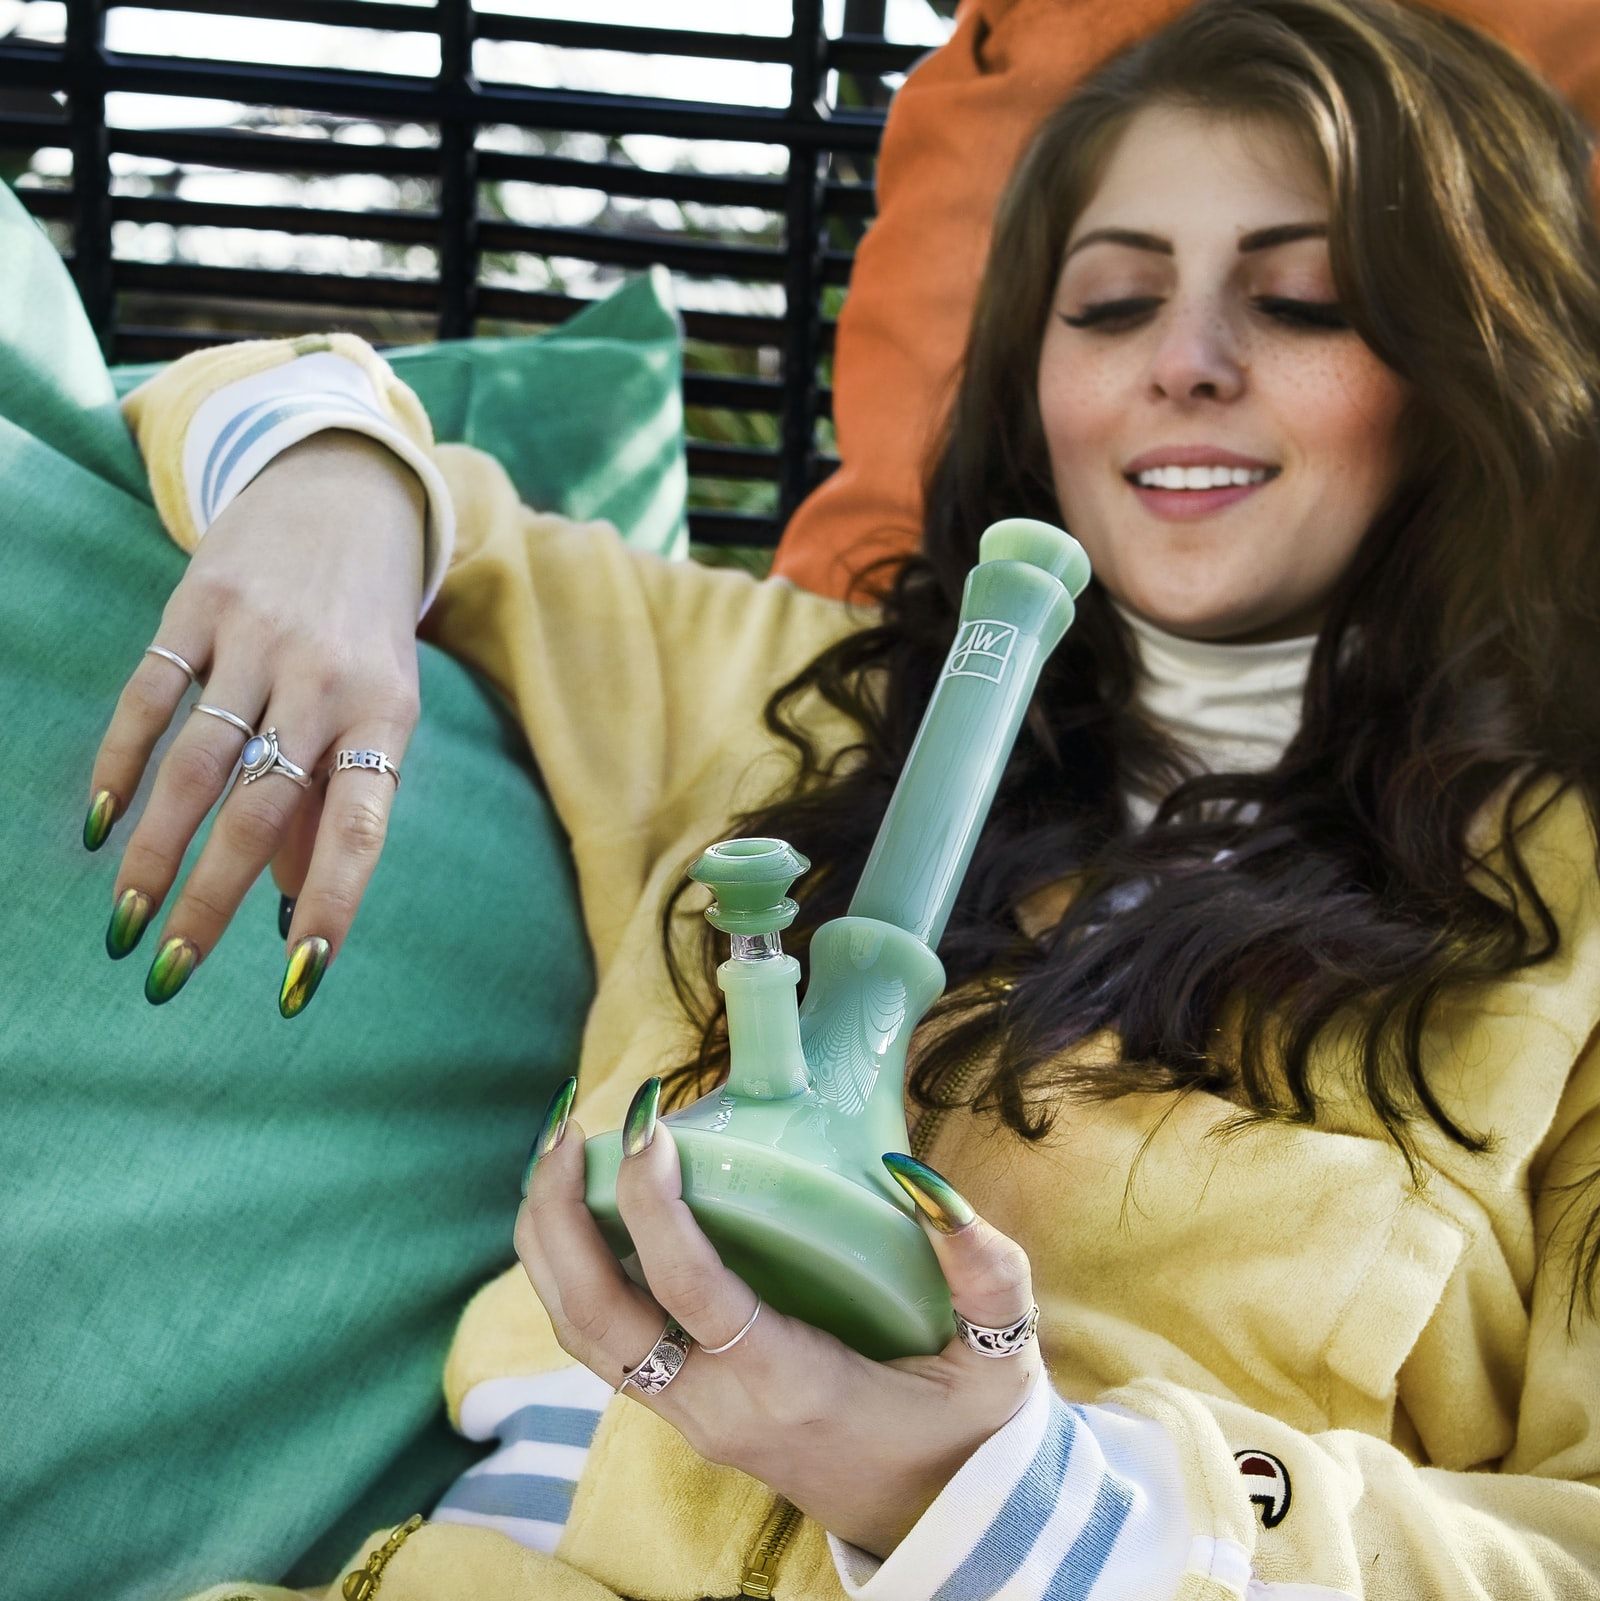 girl smoking cannabis